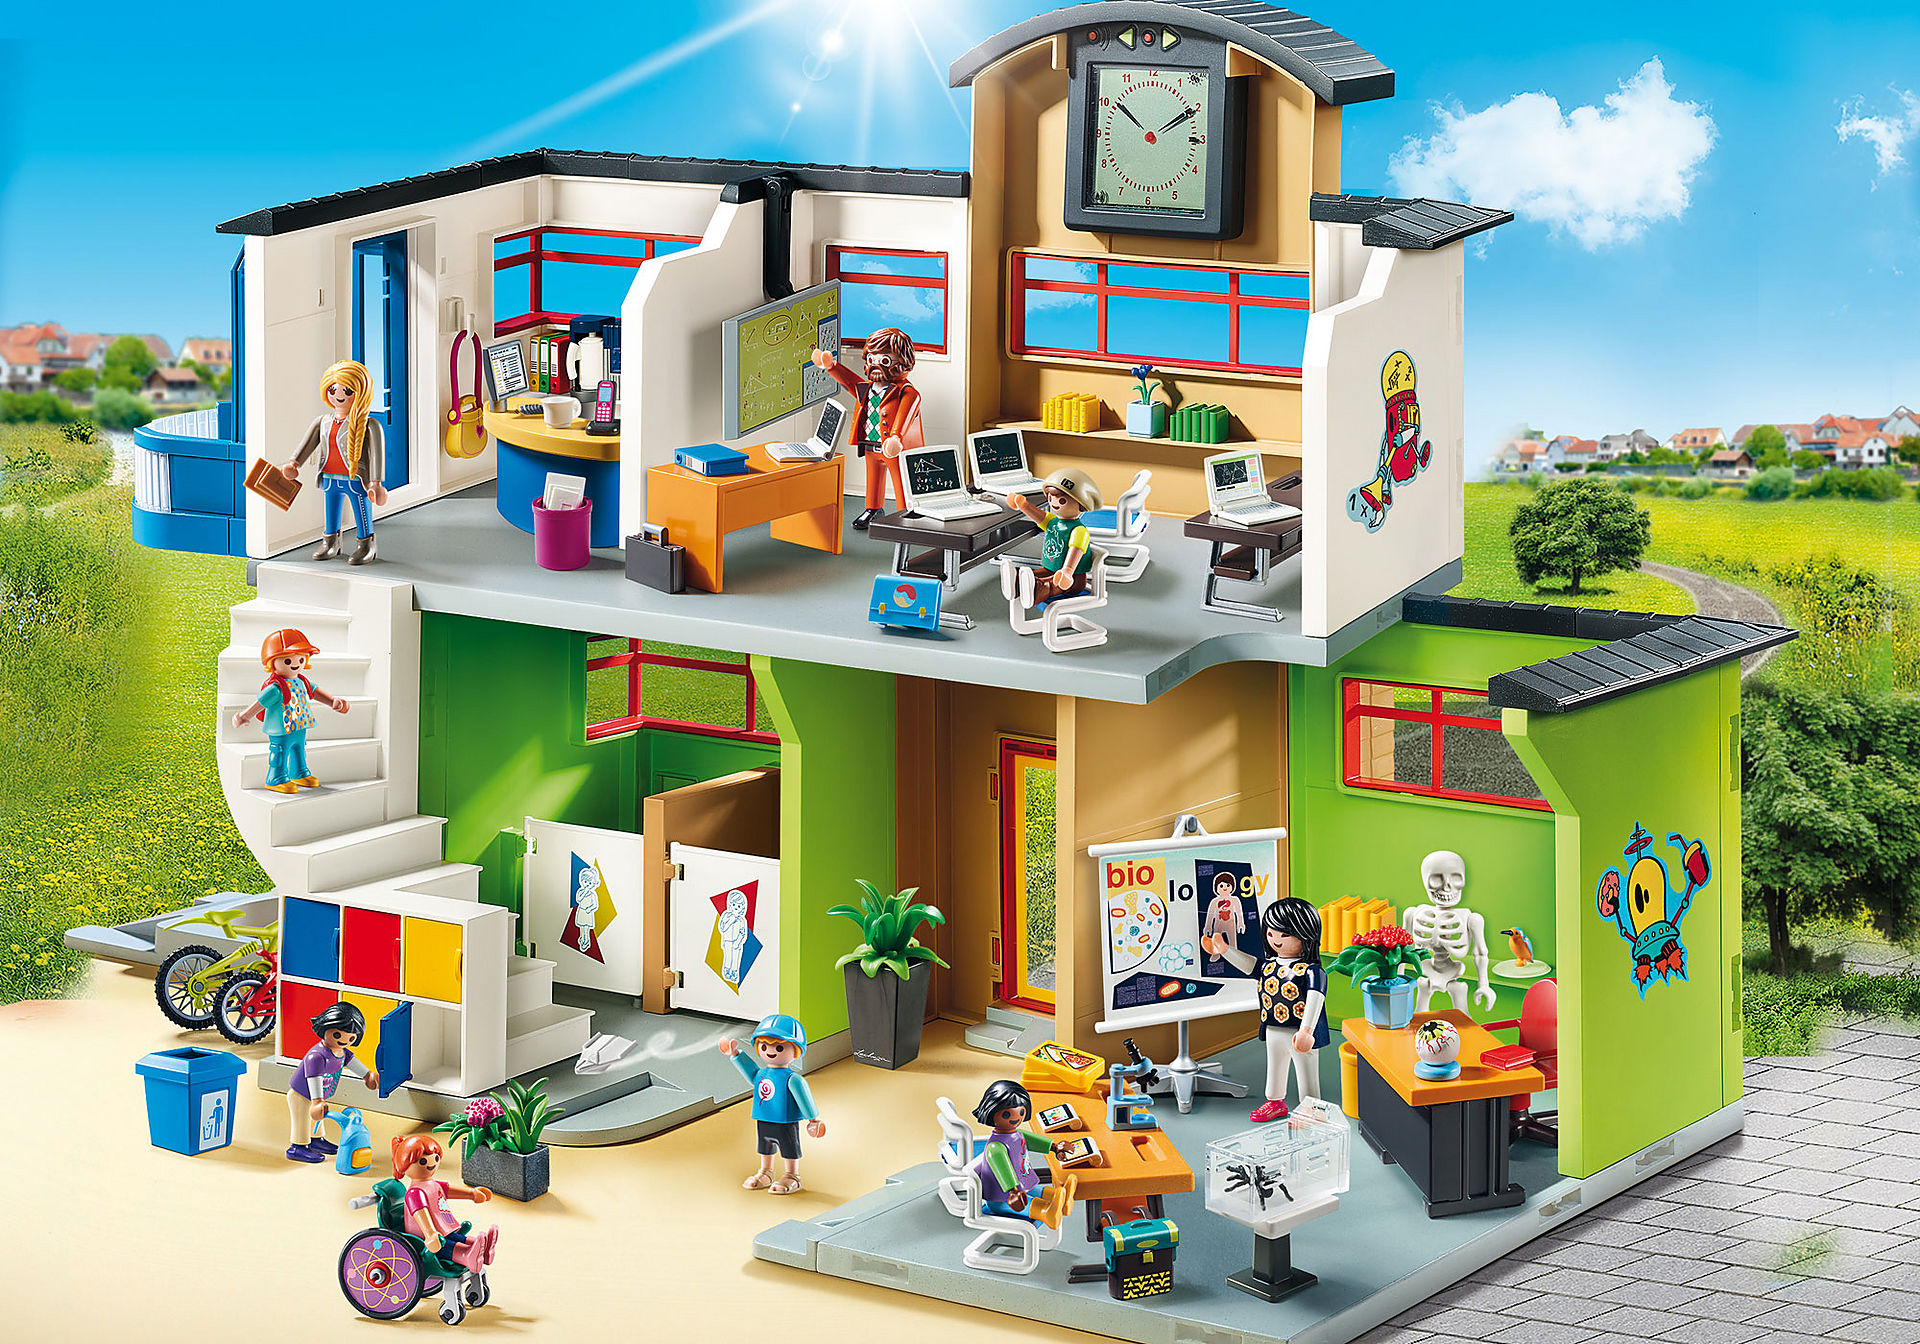 http://media.playmobil.com/i/playmobil/9453_product_detail/Große Schule mit Einrichtung